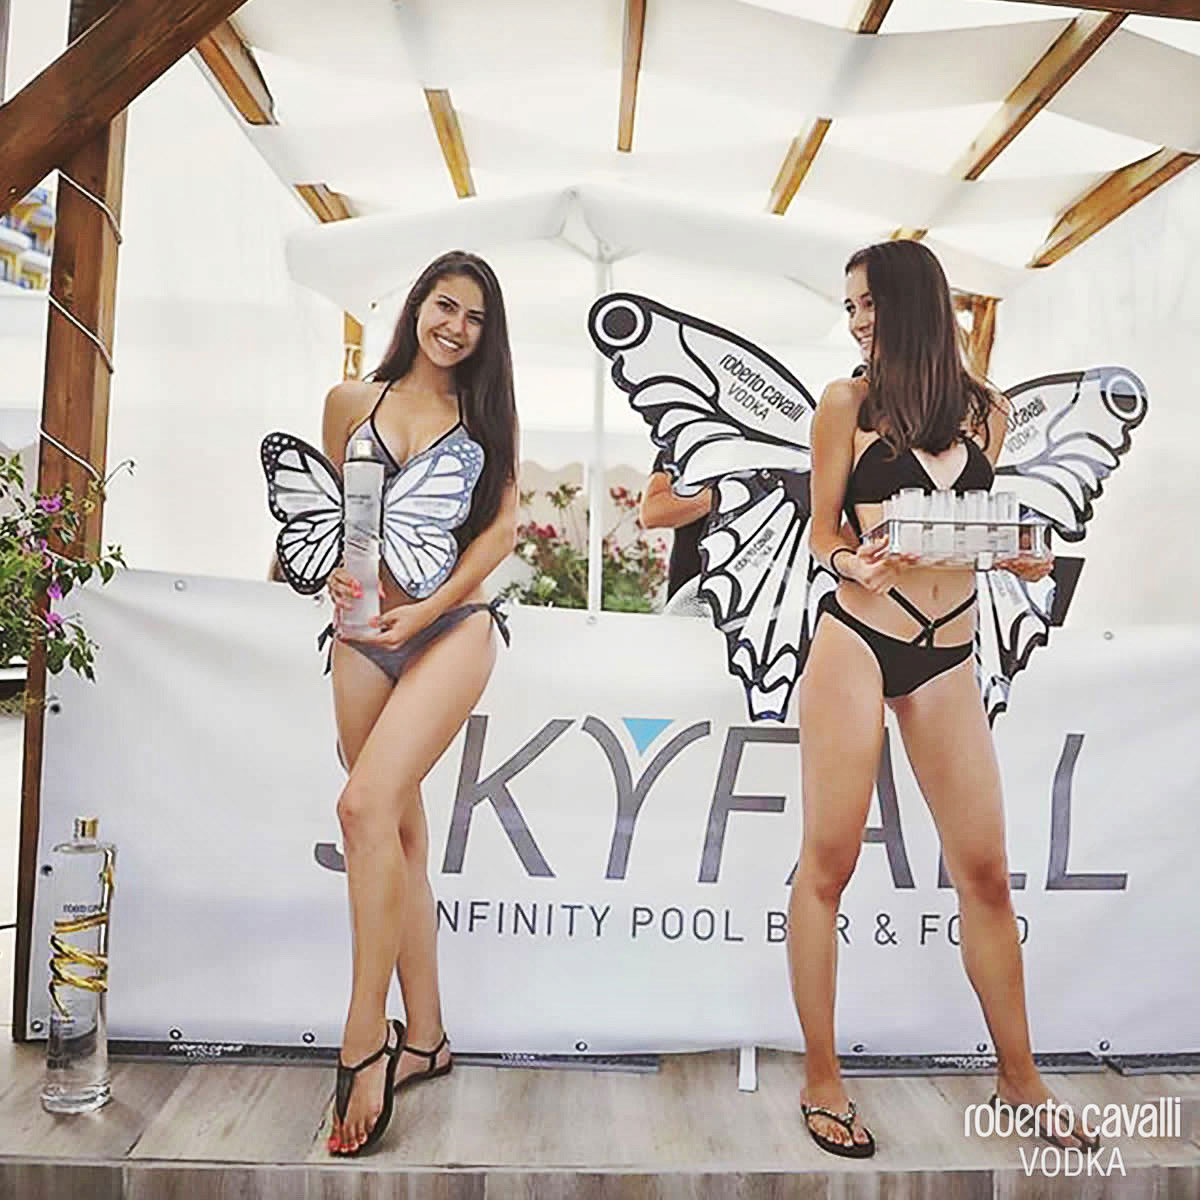 BUTTERFLY PARTY<br/>AT SKYFALL INFINITY POOL BAR<br/>GOLDEN SANDS BLACK SEA